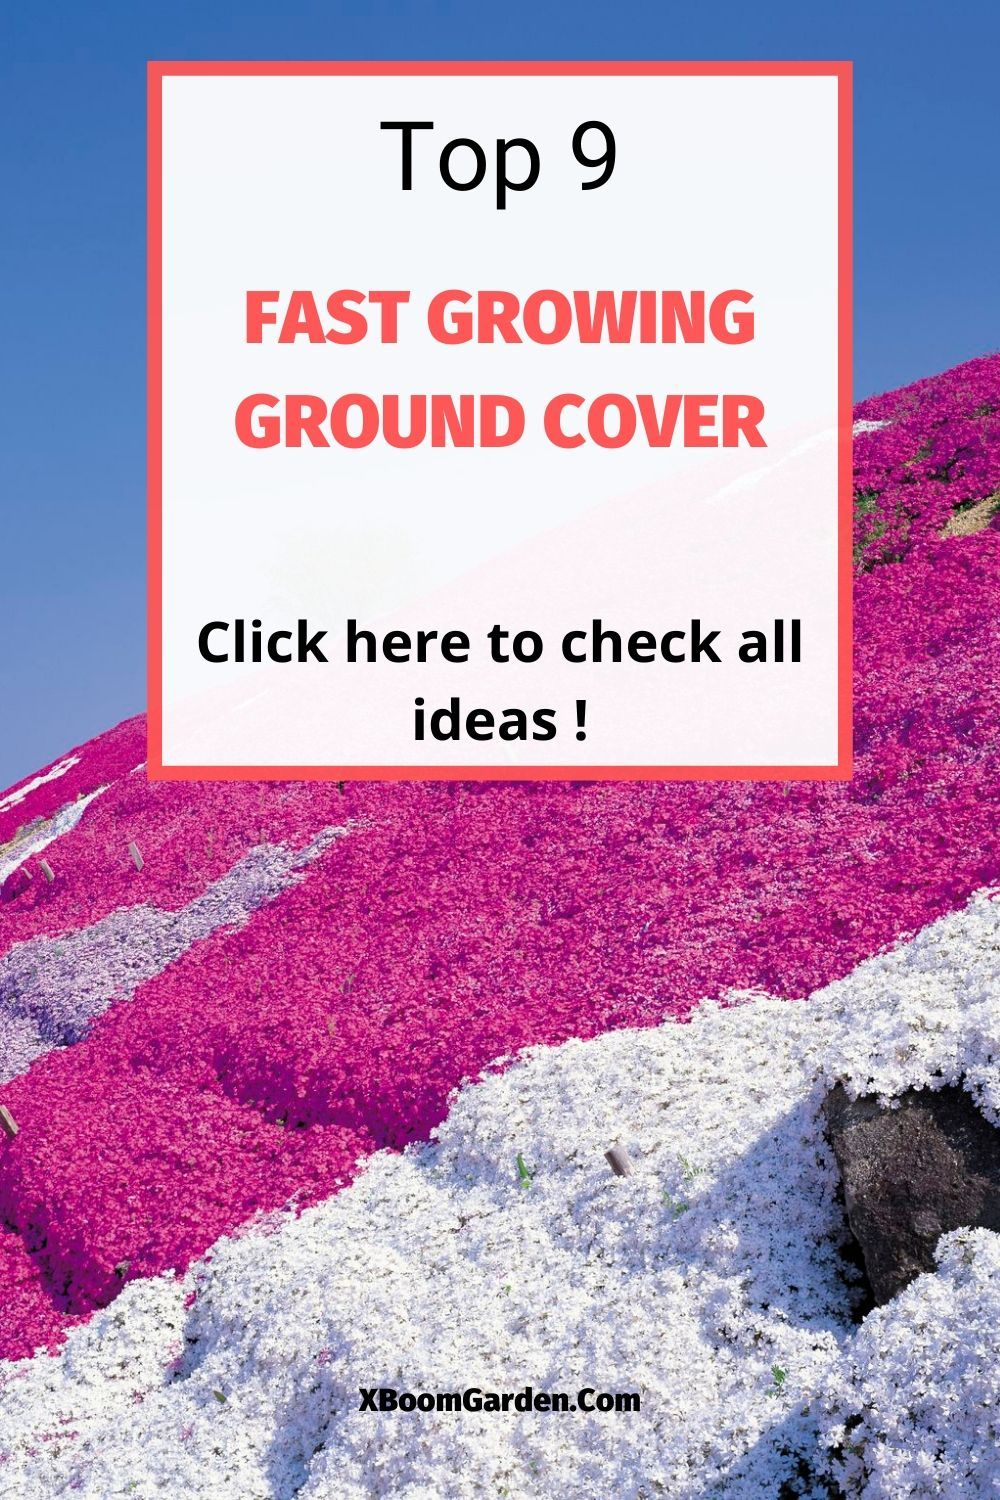 Top 9 Fast Growing Ground Cover For Slopes In 2020 Ground Cover Ground Cover Flowers Ground Cover Plants